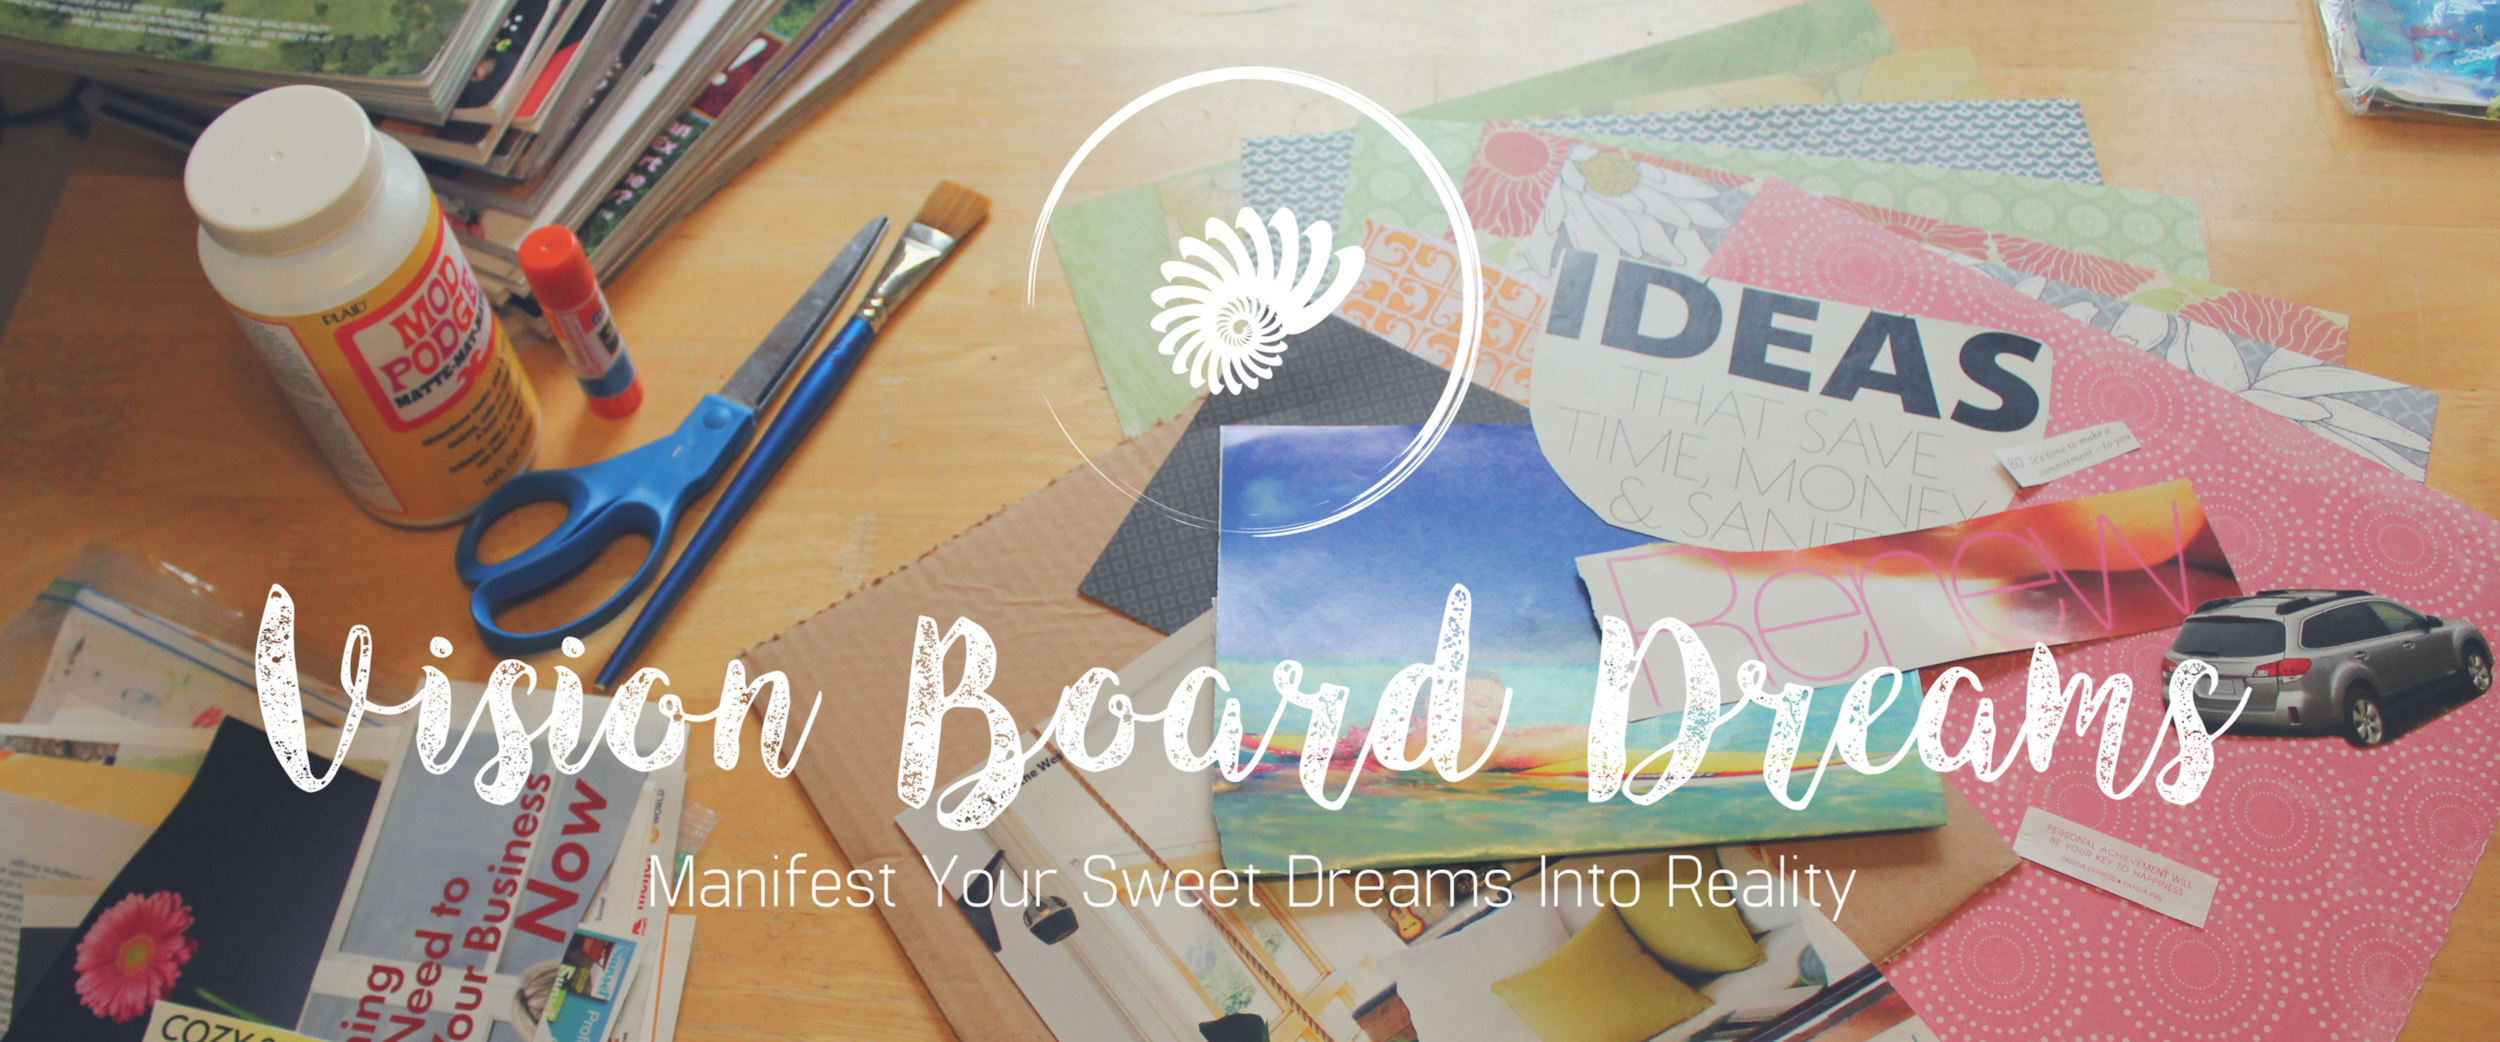 vision board dreams workshop with artist and creativity coach desiree east